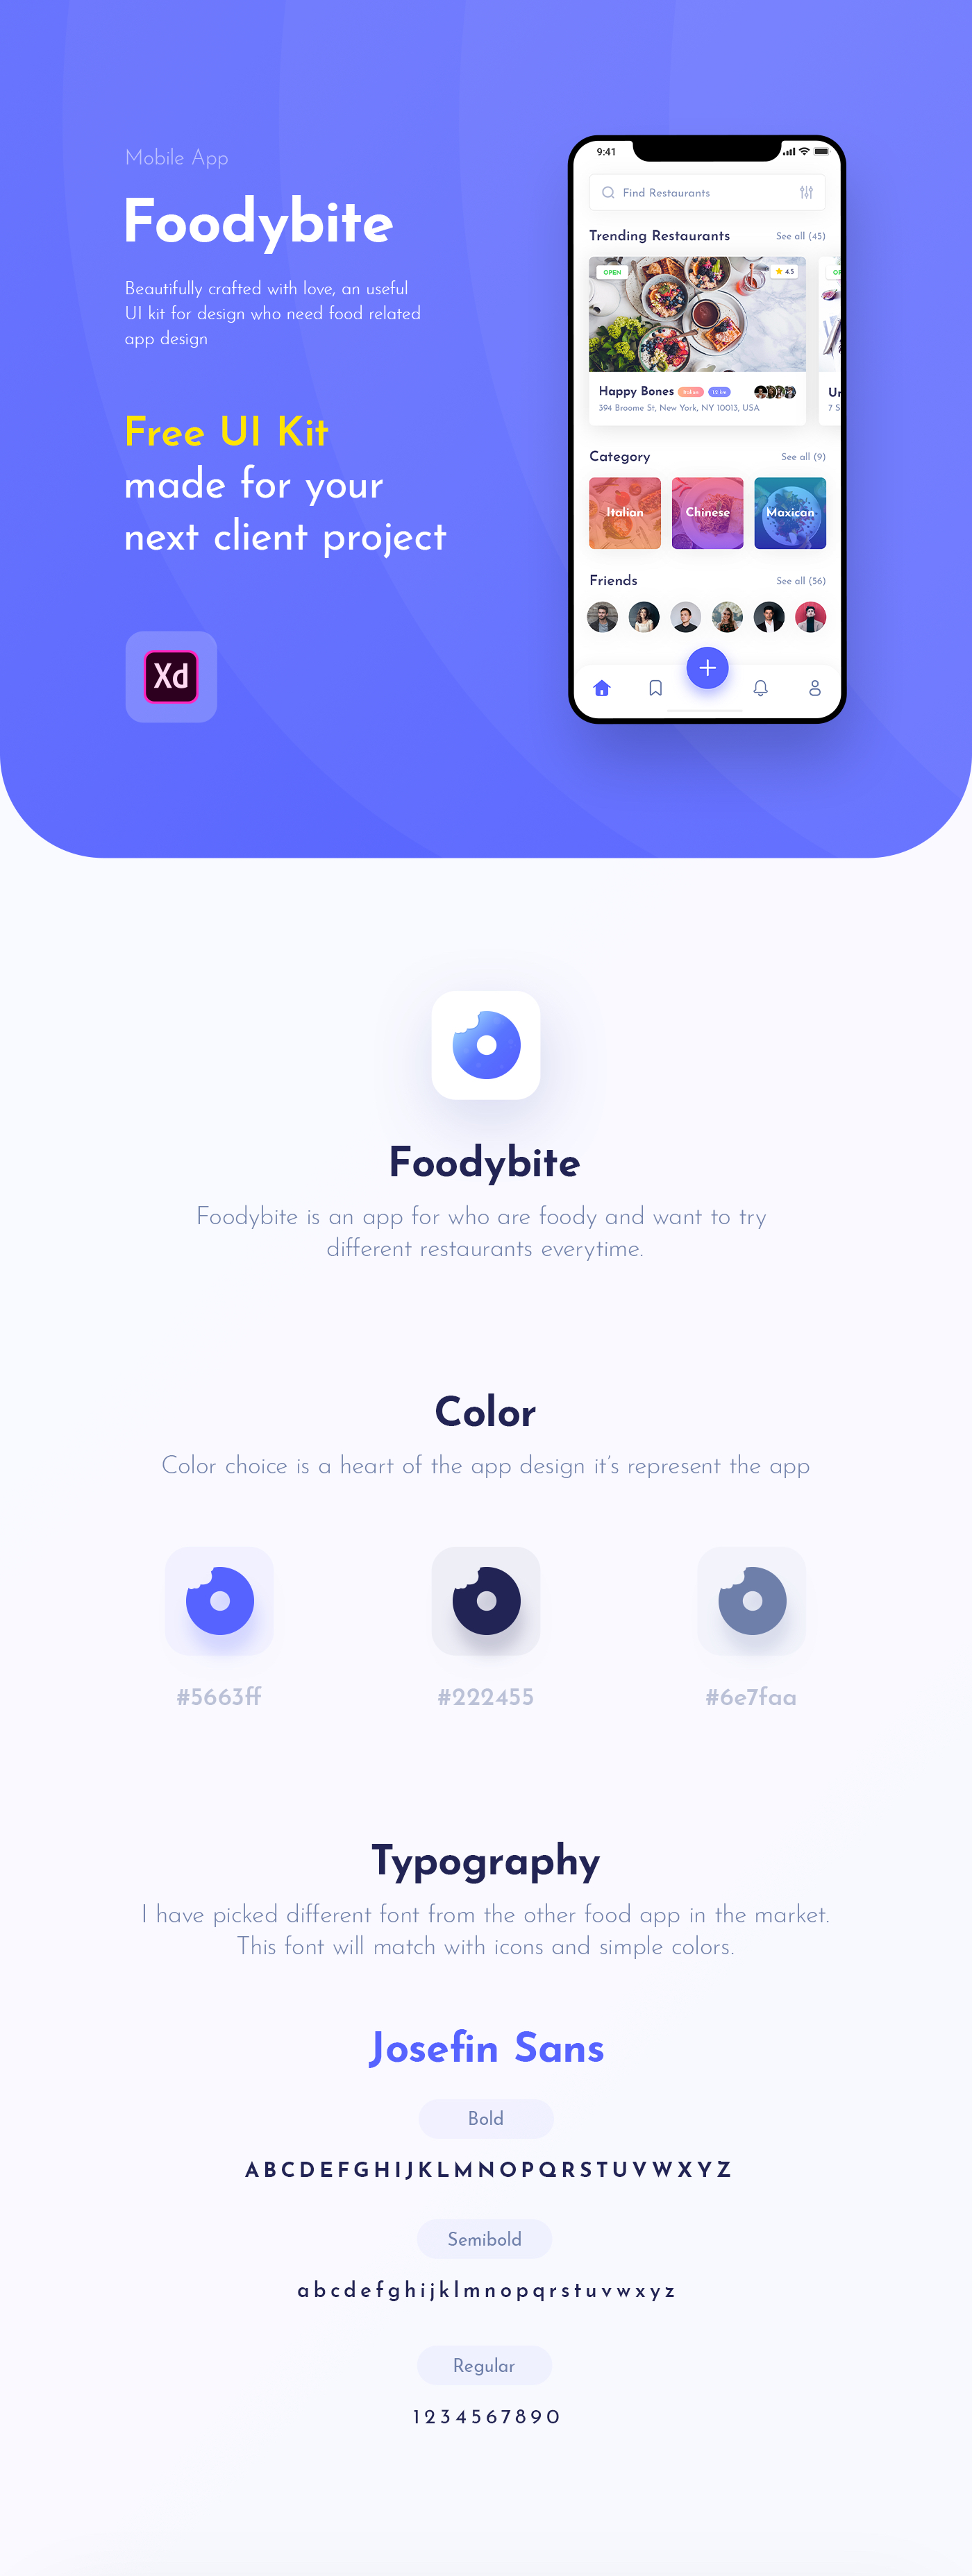 Foodybite - Free UI Kit for Adobe XD - Foodybite is a free UI Kit. It is easy to use for Adobe XD for who want to design an app related to food or restaurant services. The UI Kit pack included more than 30 customizable screens. All screens are fully editable. This UI Kit is free for personal & commercial projects.